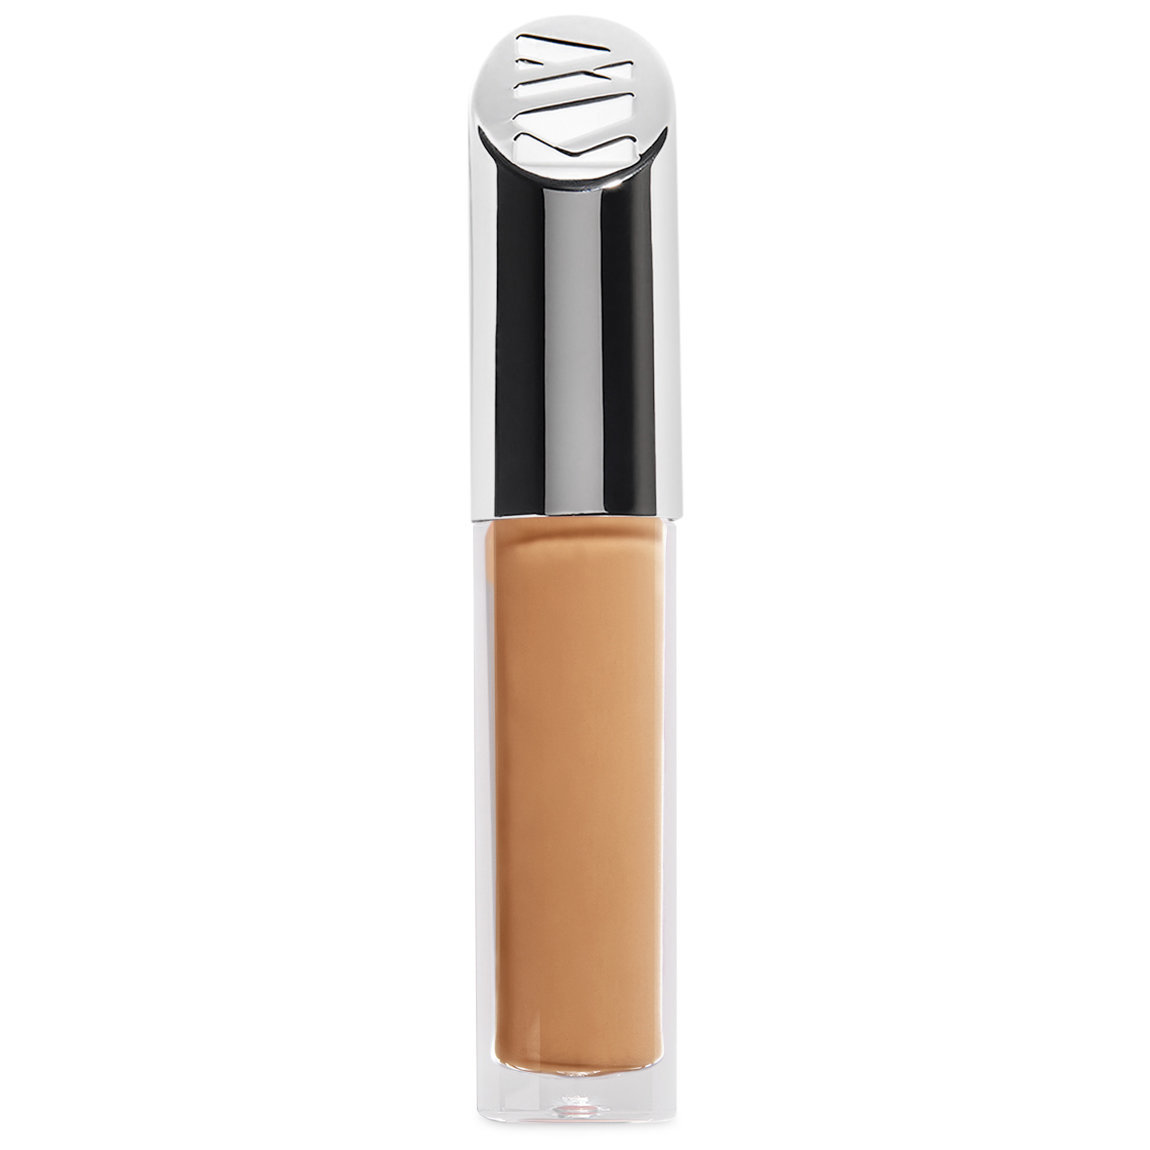 Kjaer Weis Invisible Touch Concealer D310 alternative view 1.